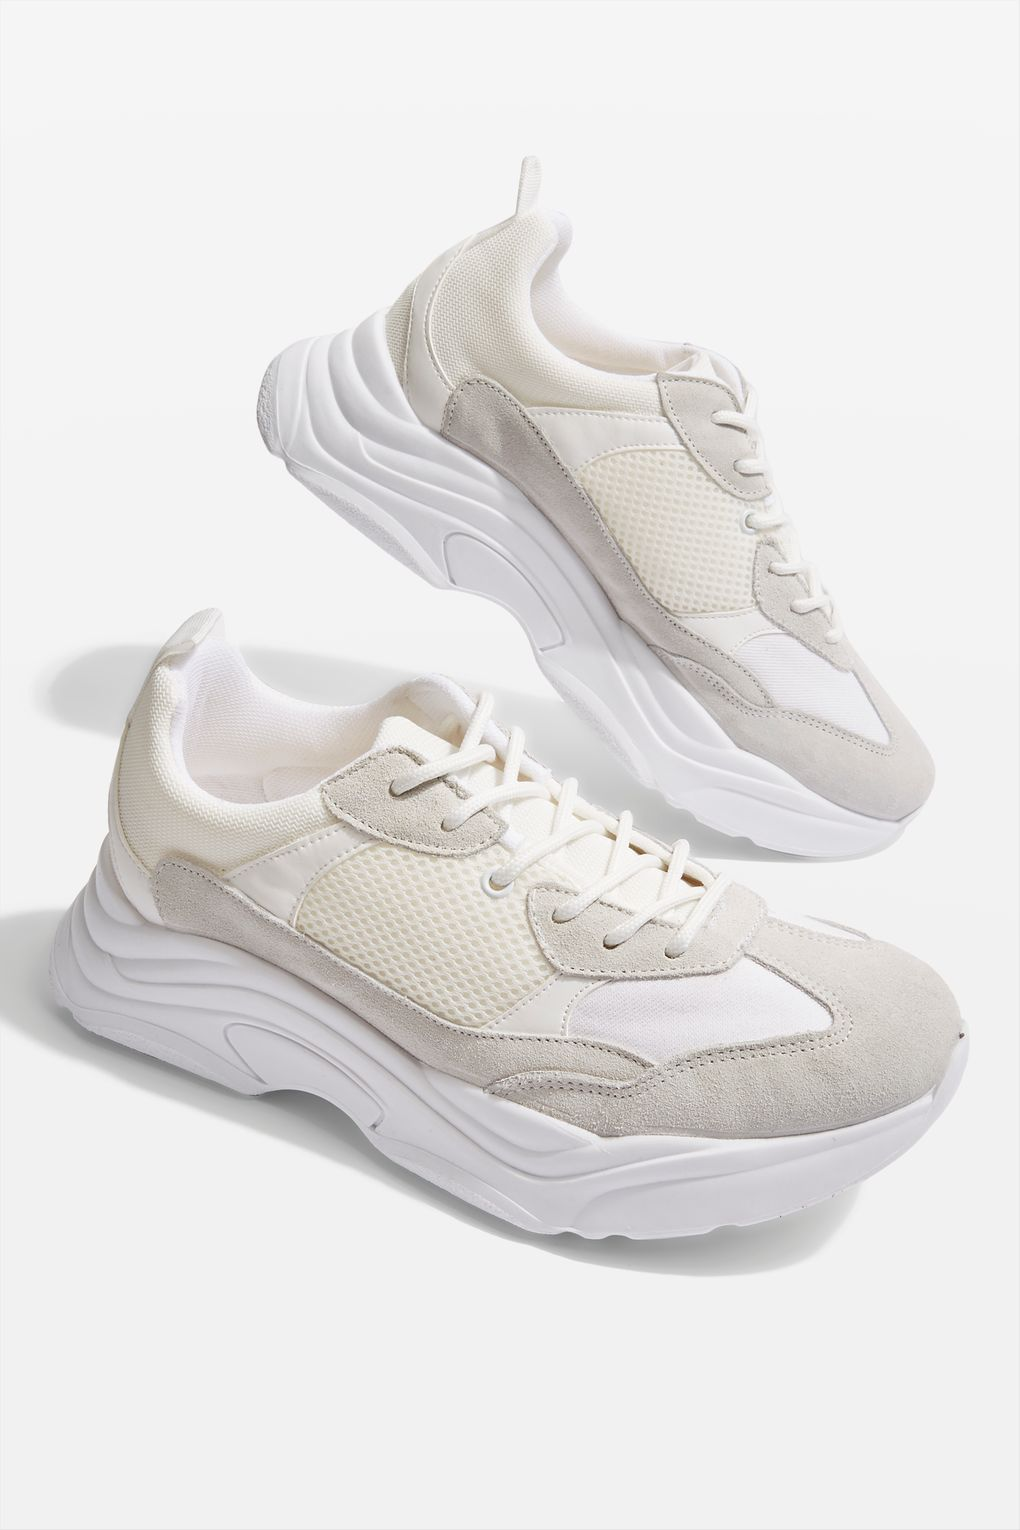 Topshop Finally Recreated Those Balenciaga Sneakers Everyone Is Wearing 24b7e2007a44b